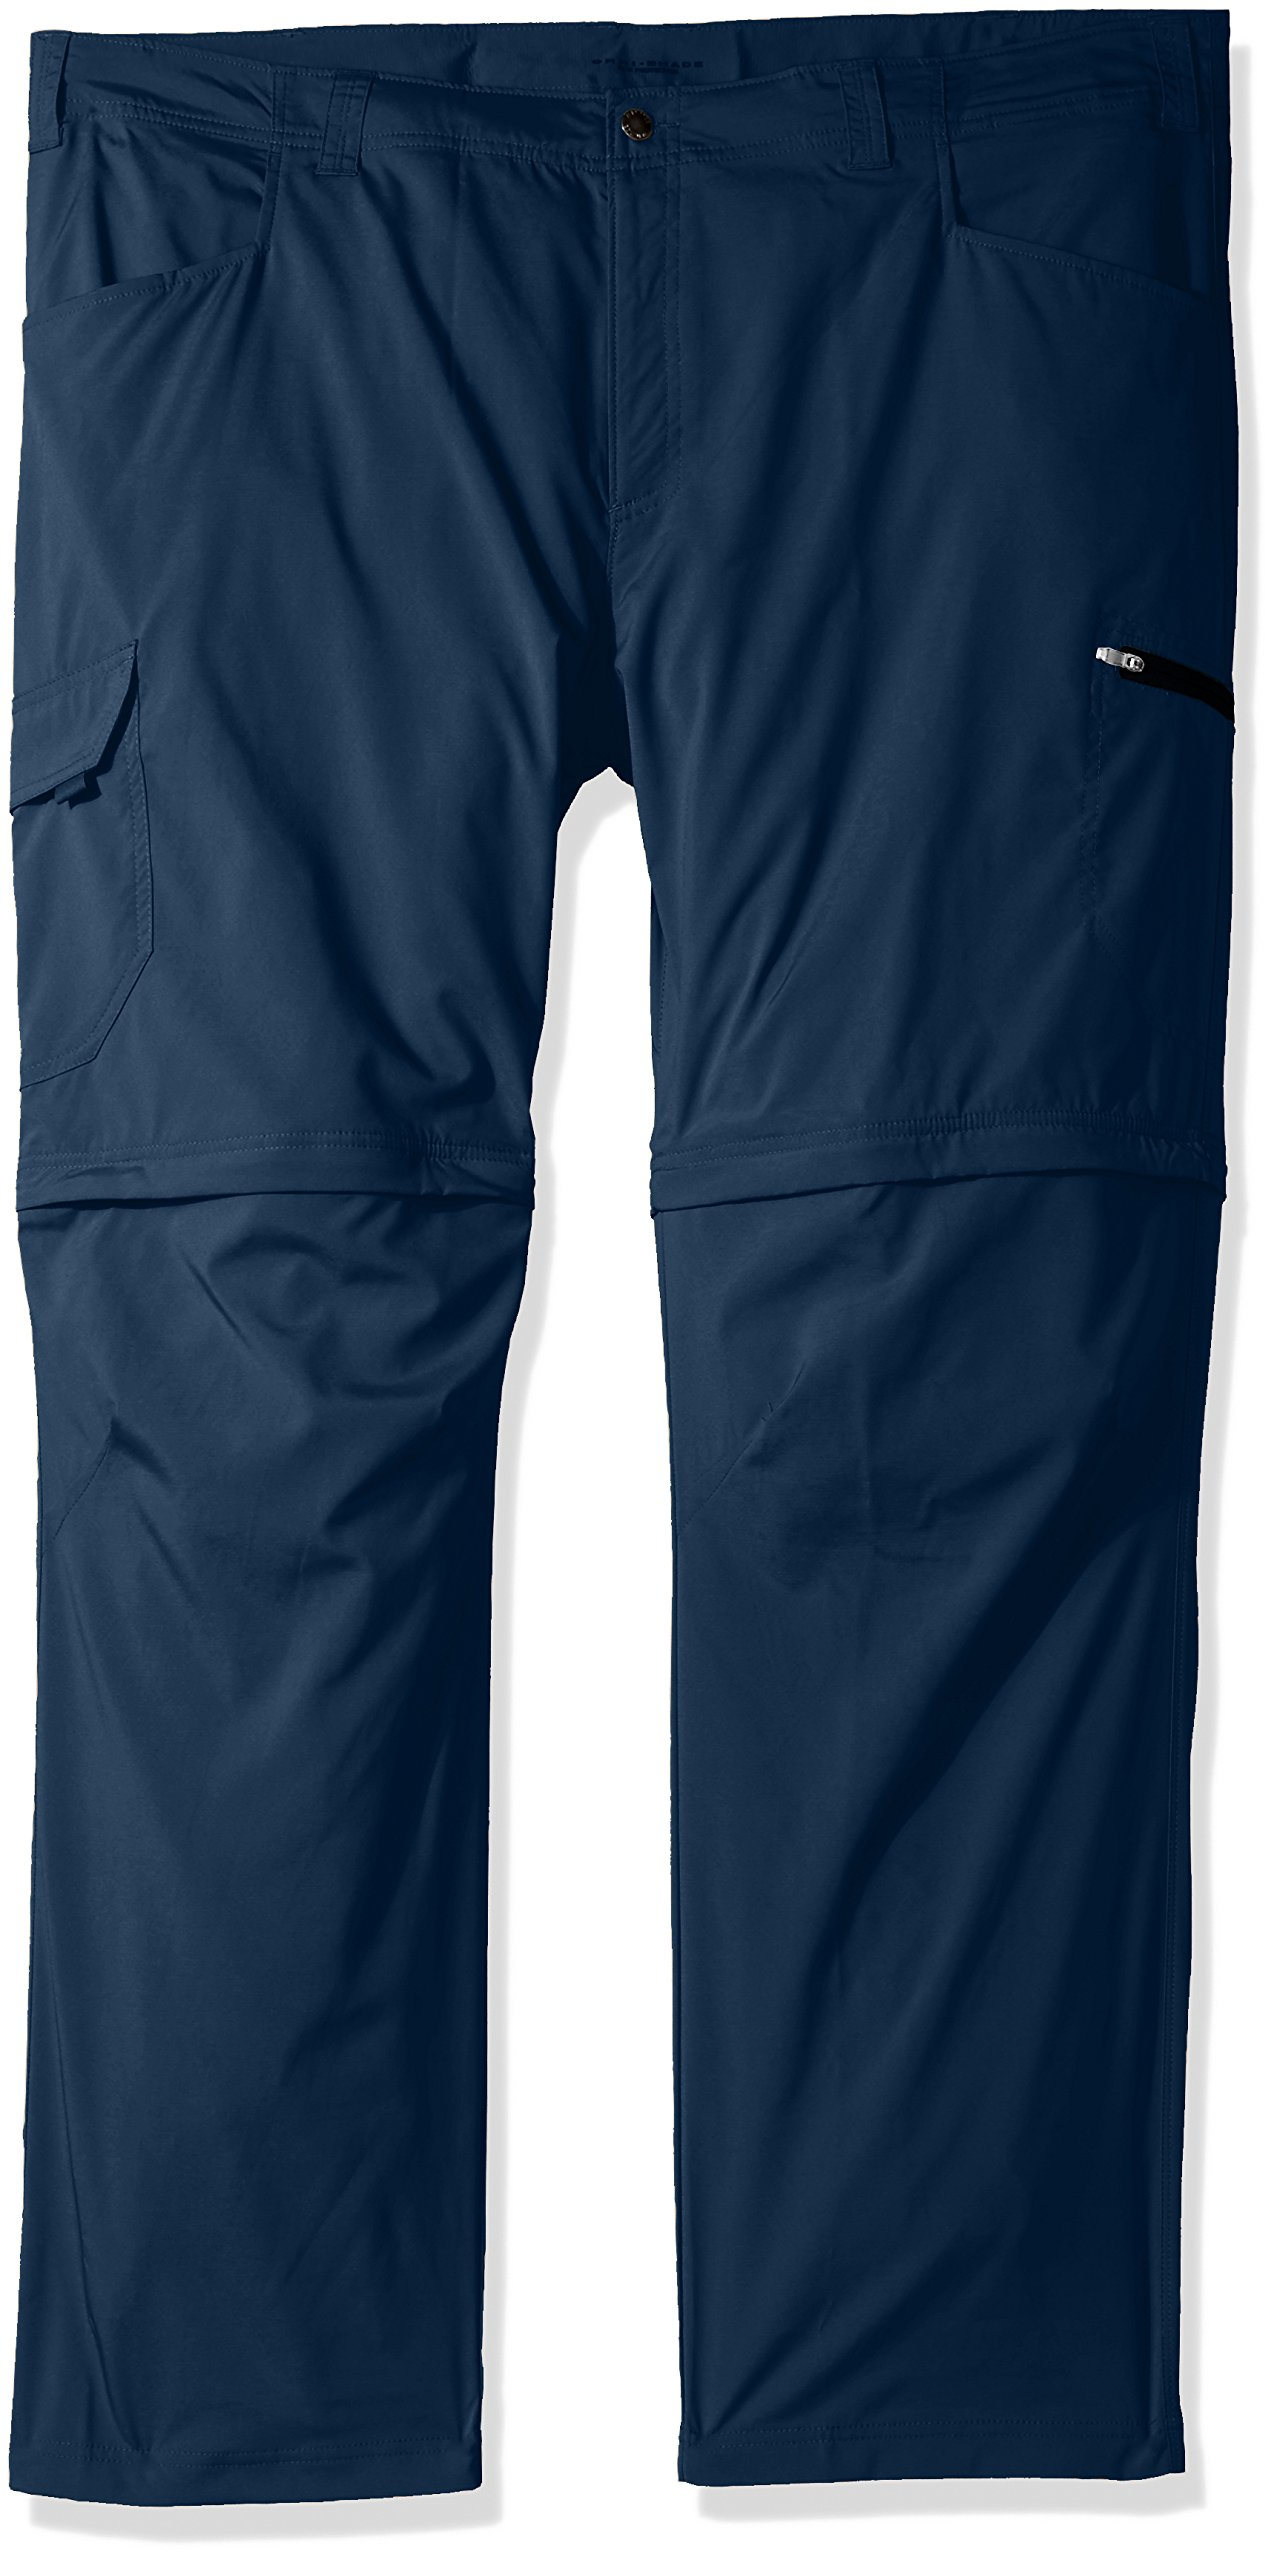 Columbia Silver Ridge Stretch Big & tall Convertible Pants, Whale, 44x36